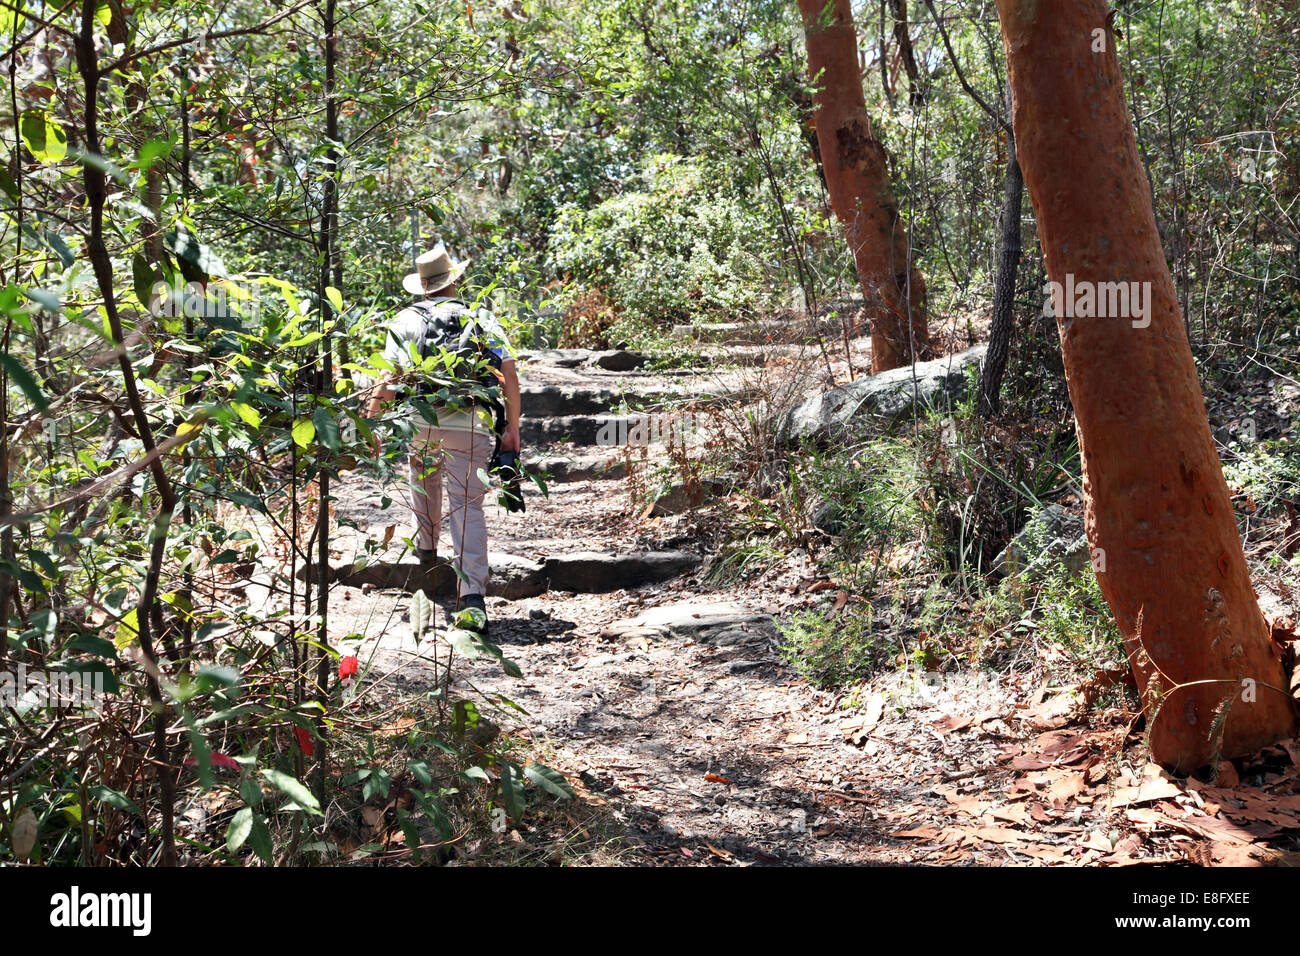 Australia, Nuovo Galles del Sud, Sydney, Man walking in forest - Stock Image